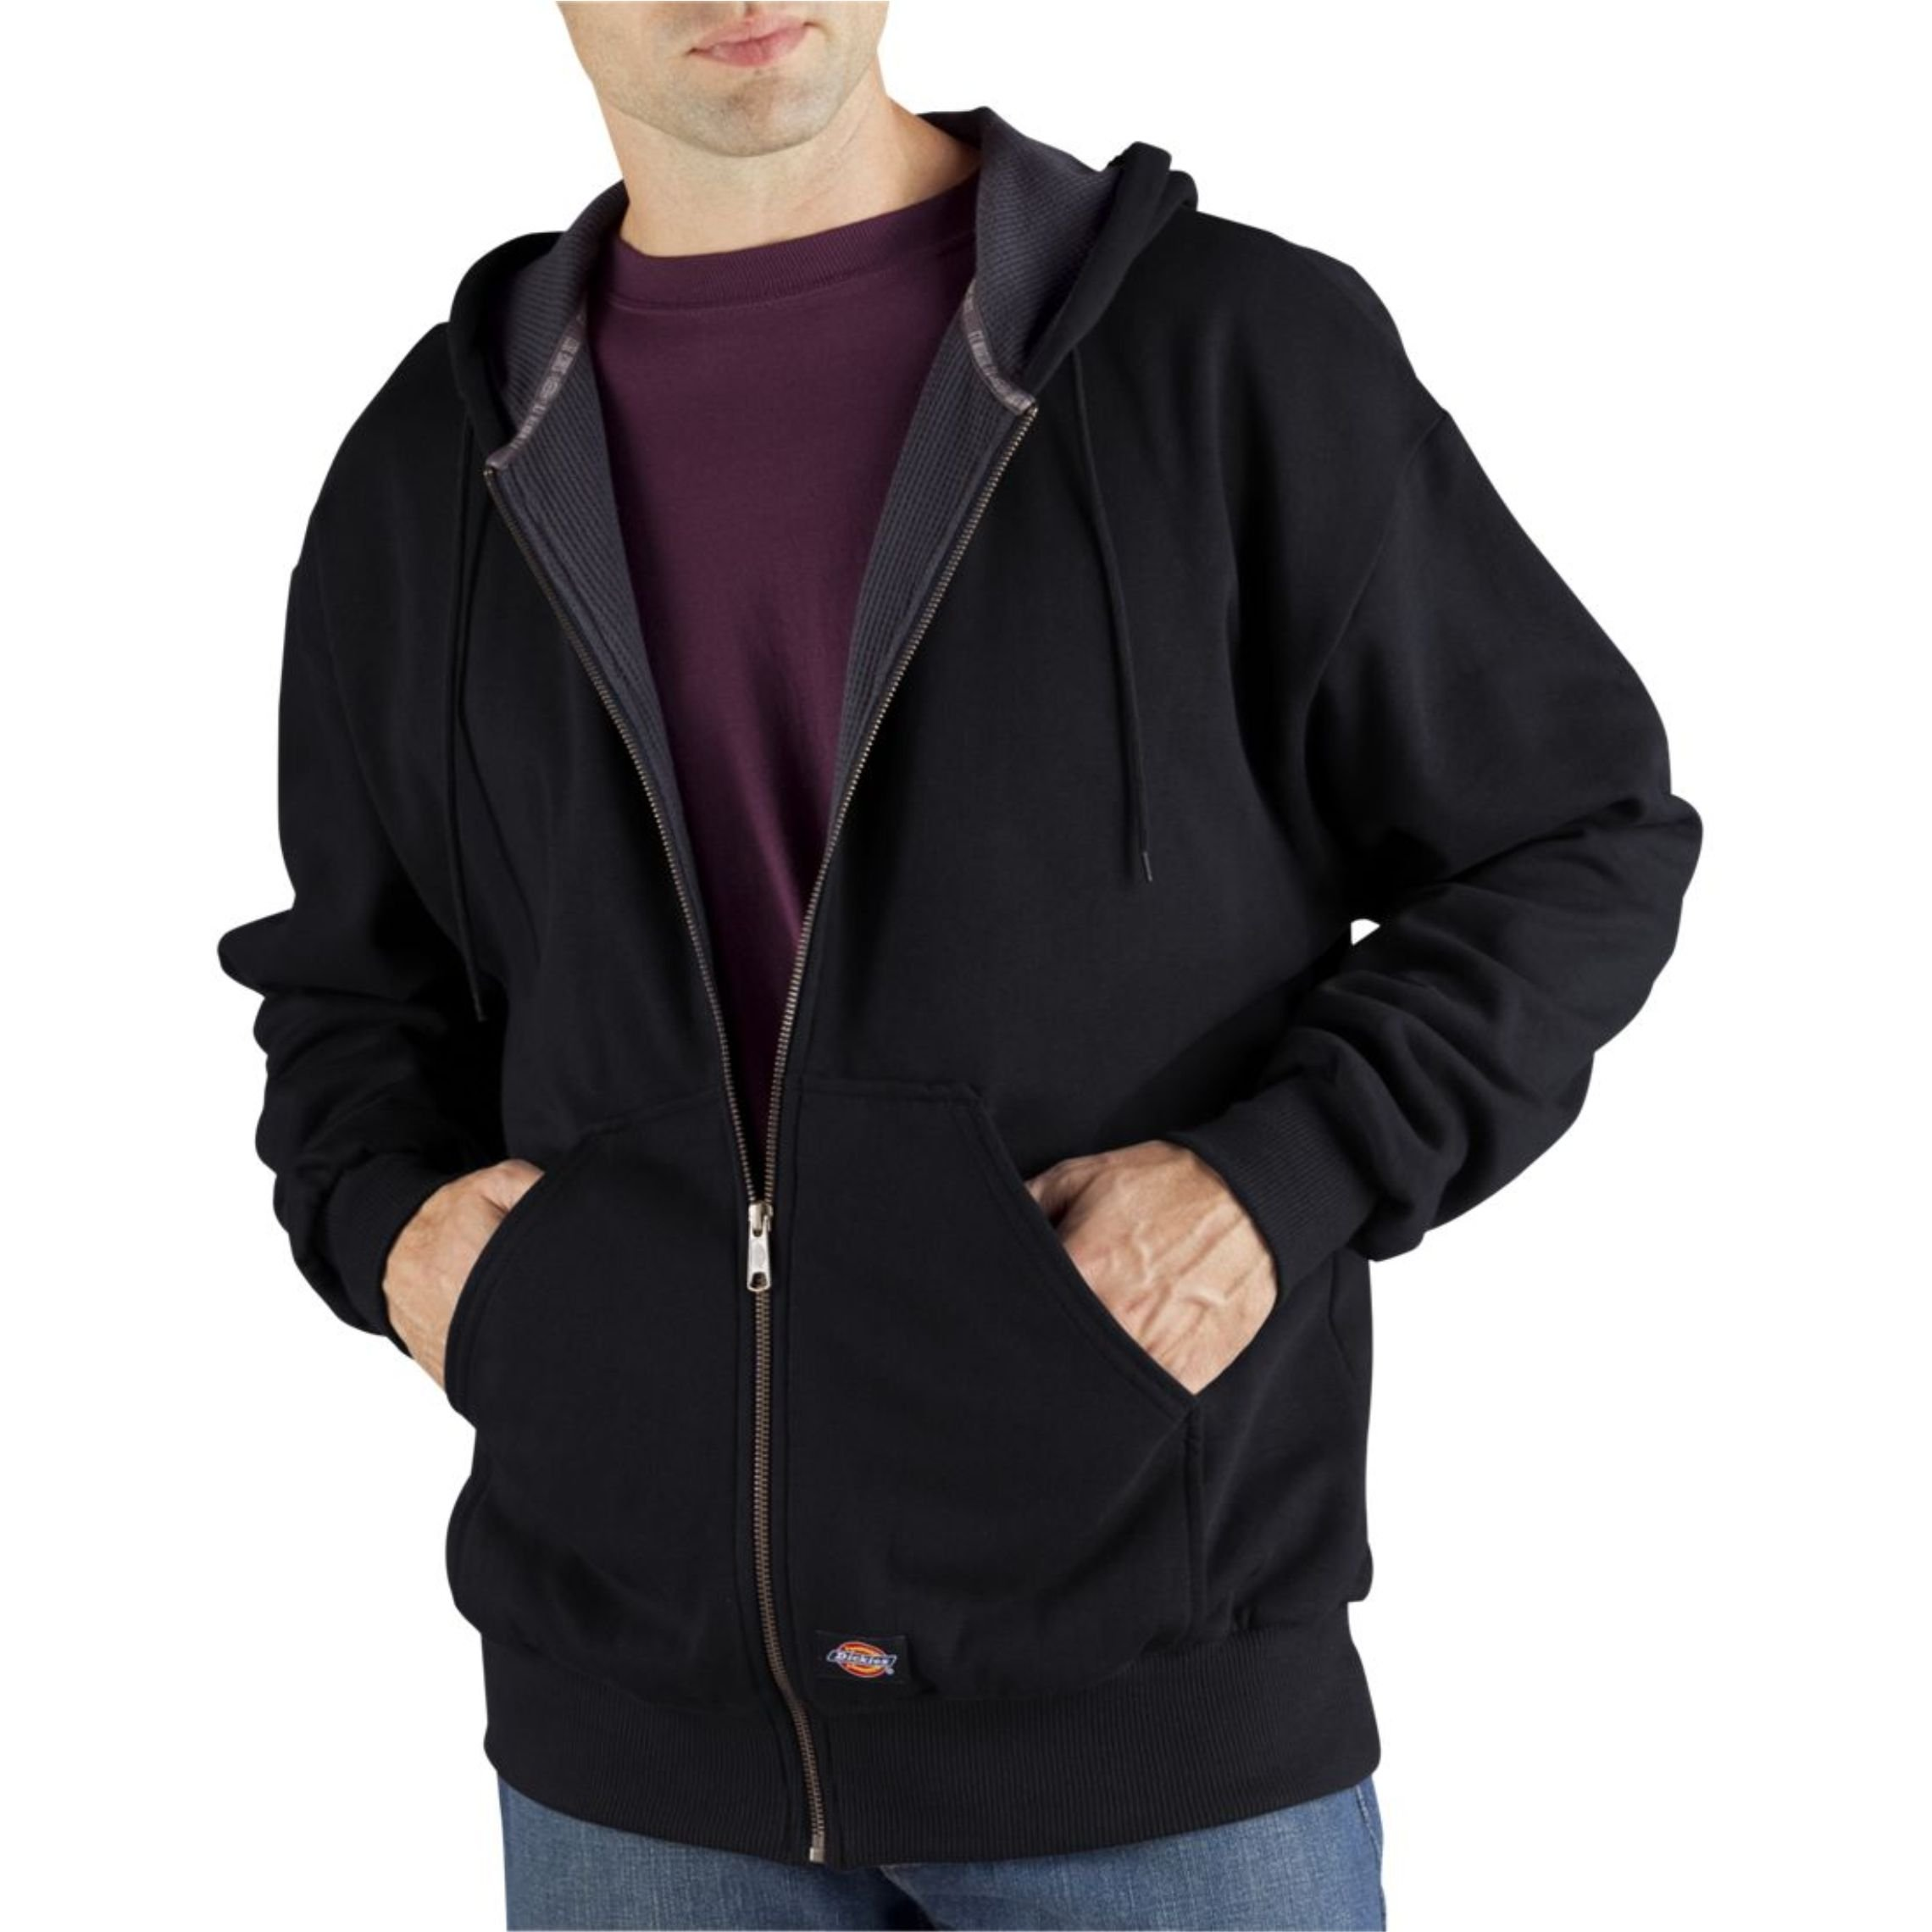 Dickies Men's Thermal Lined Fleece Jacket, Black, XX-Large by Dickies